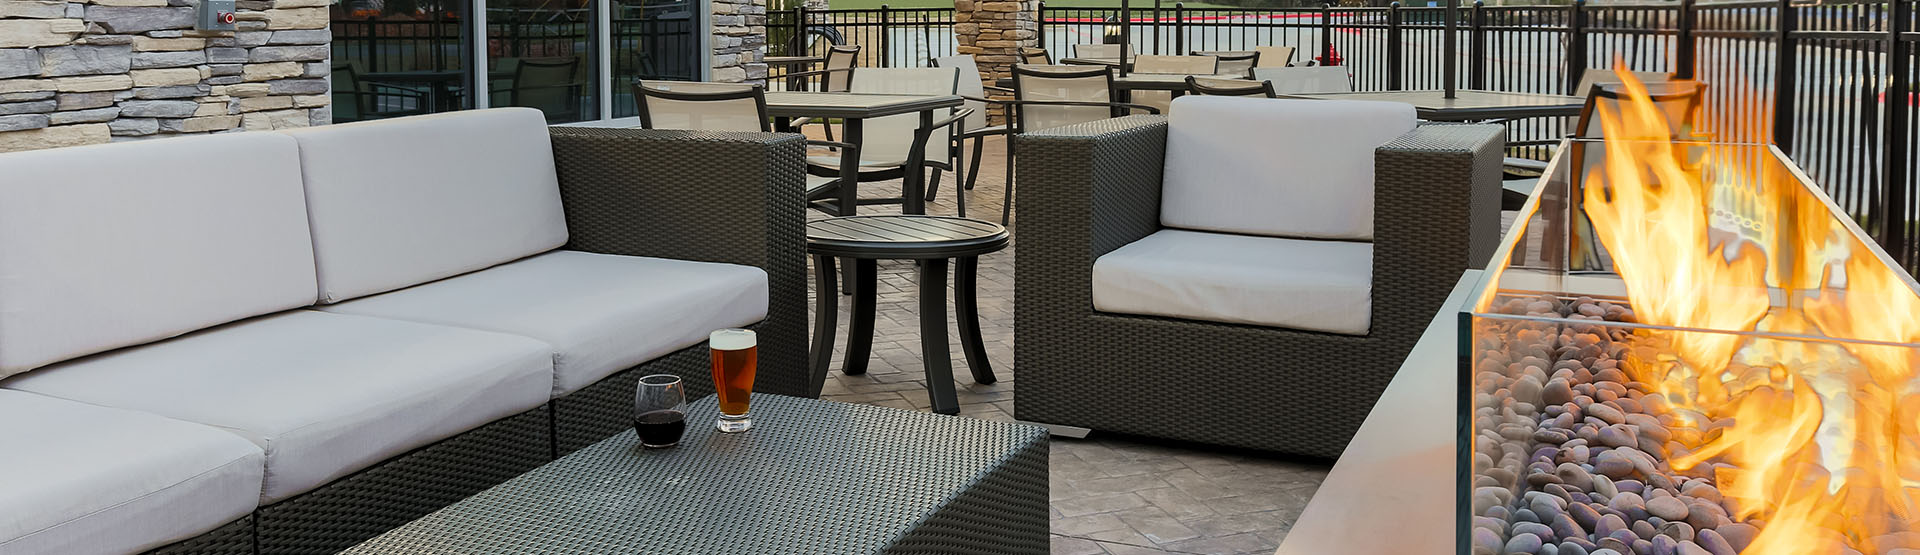 Hotel patio loung furniture with firepit